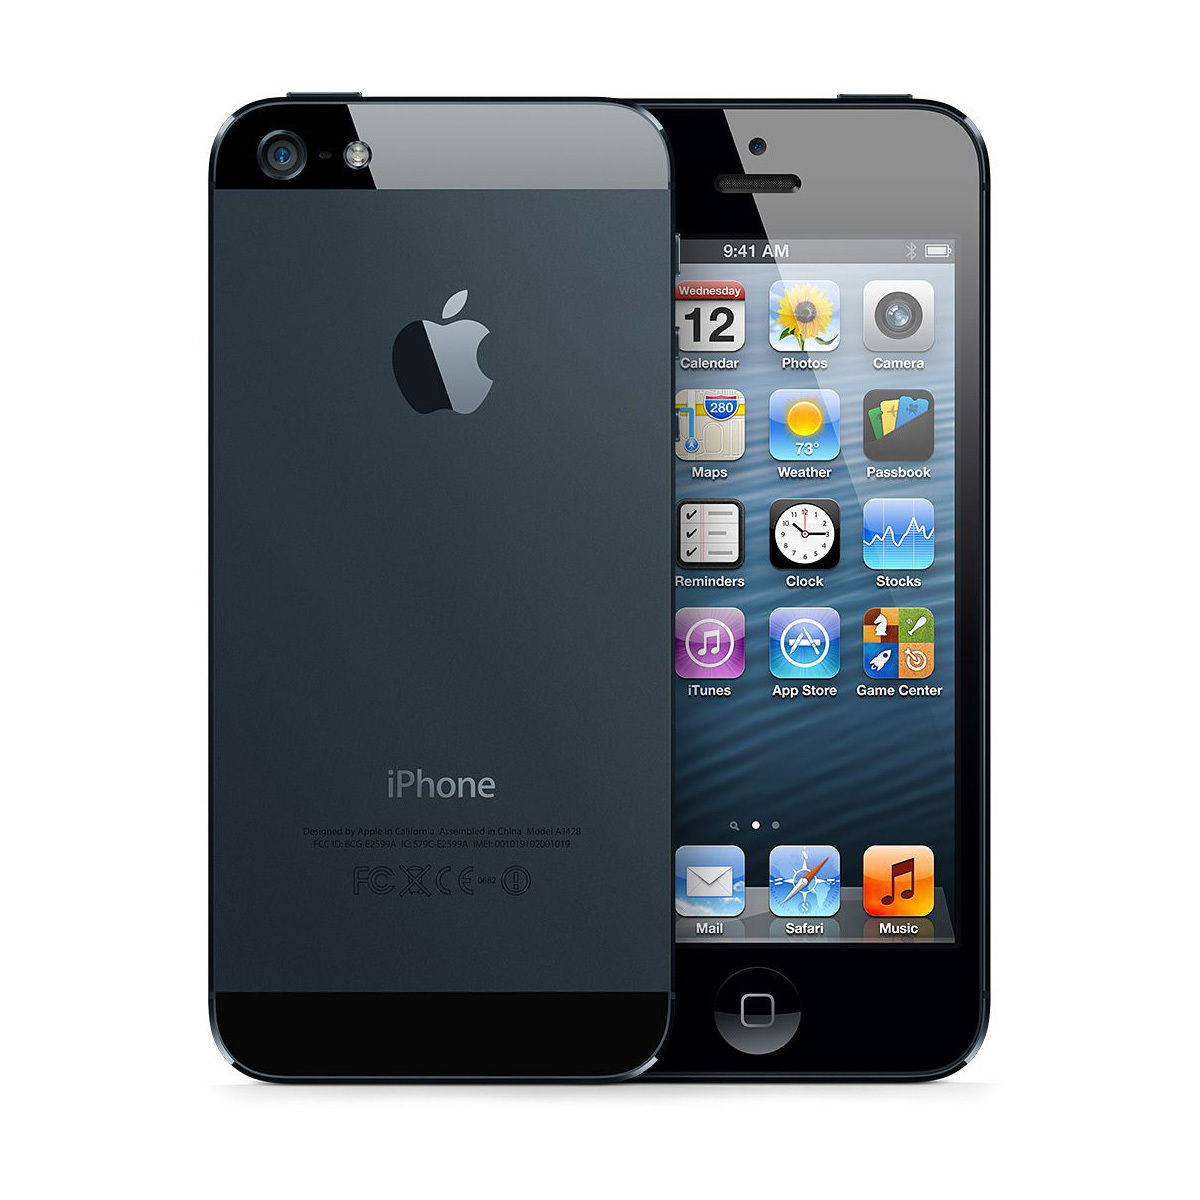 iphone5 black1.jpg